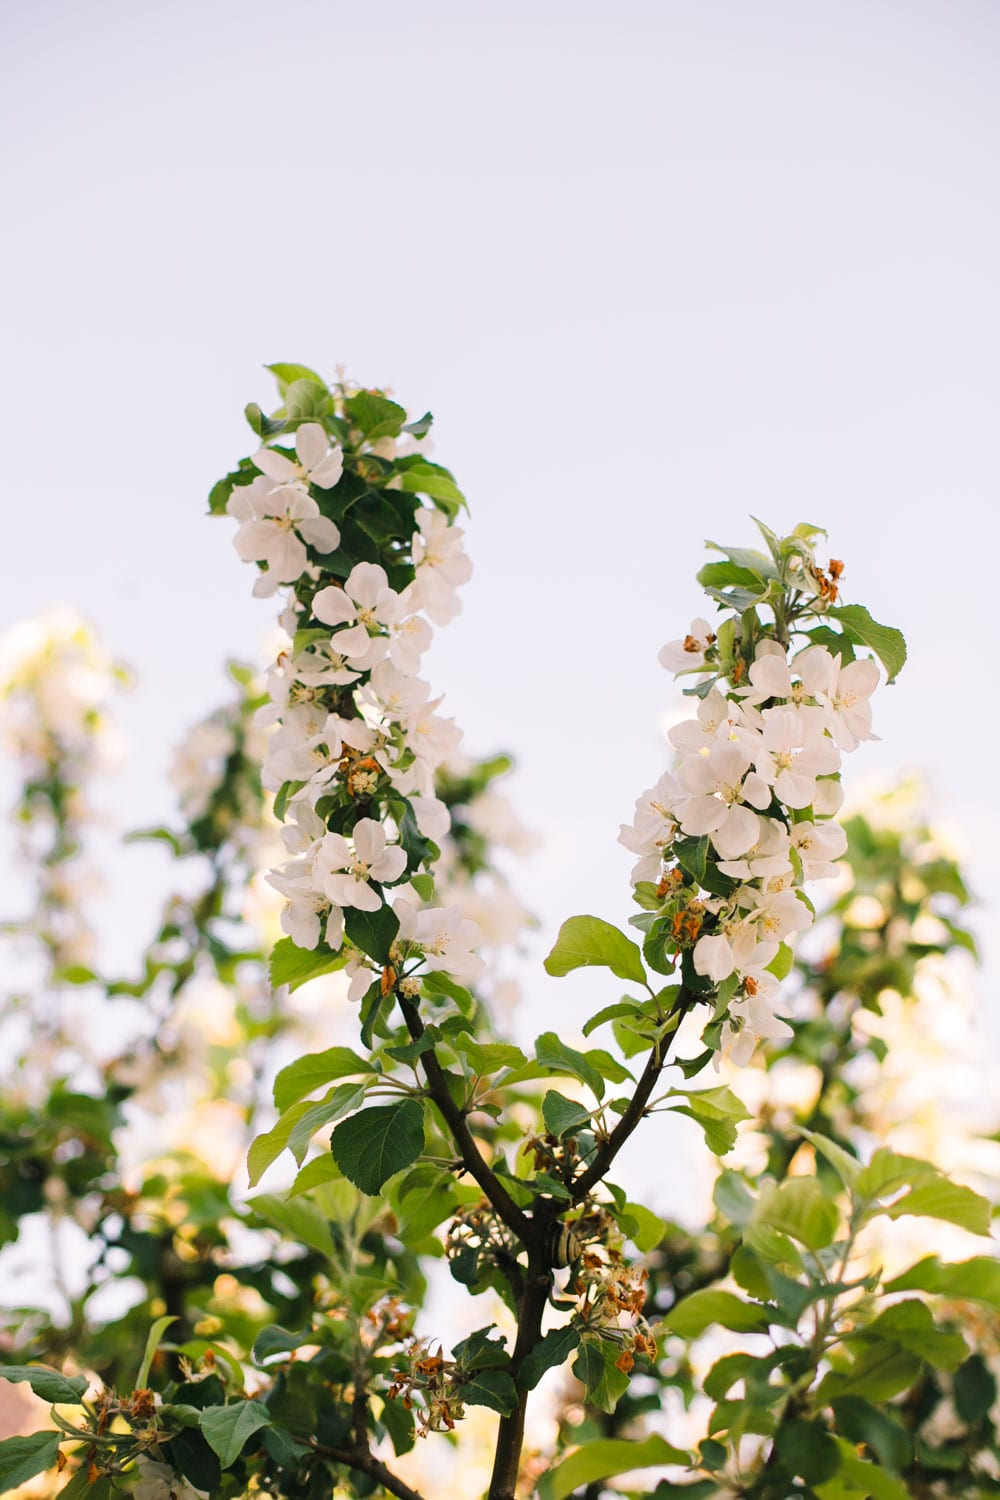 have-acie-blog-blomster-9-of-20